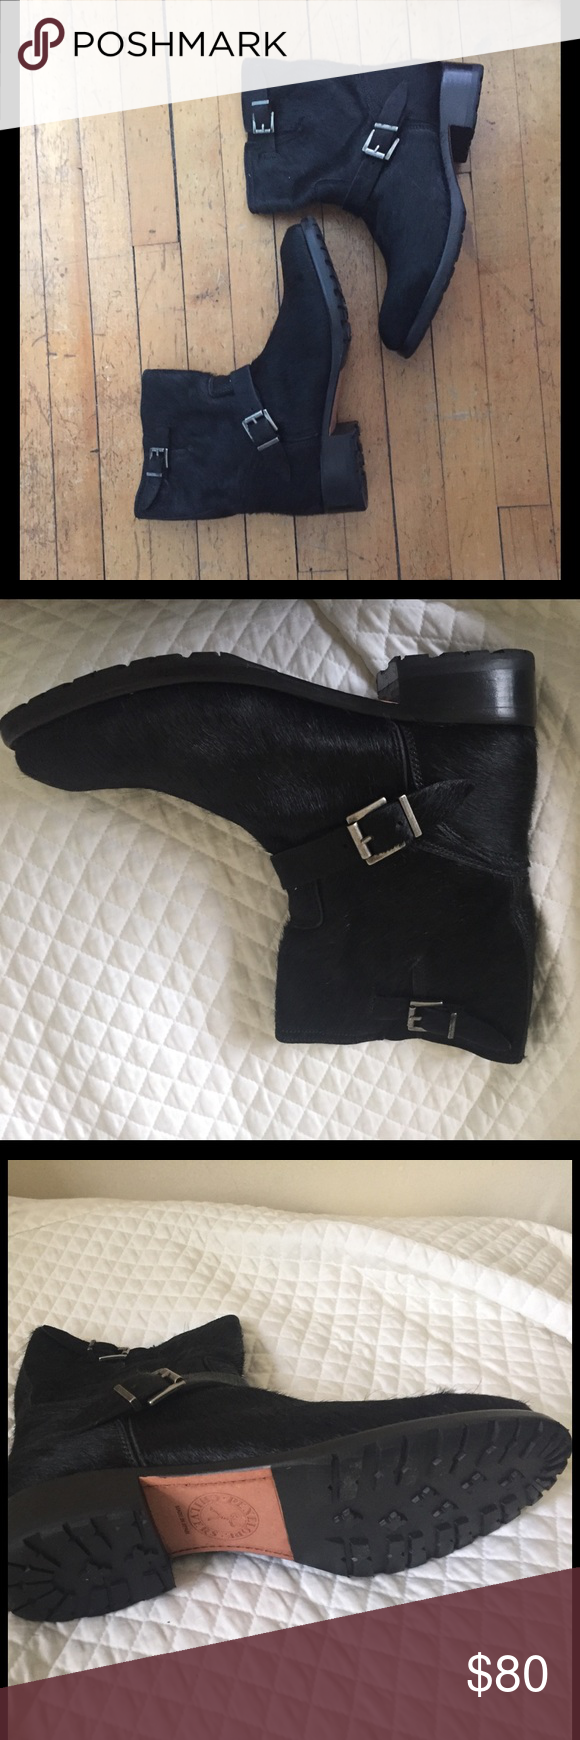 Calf Hair Moto Boot - Brand New, Size 41 Calf Hair Moto Boot by Penelope Chilvers. Brand new! Just a tad bit too big for me. Size 41. Real calf hair. Bought from Calypso St. Barth. Penelope Chilvers Shoes Combat & Moto Boots